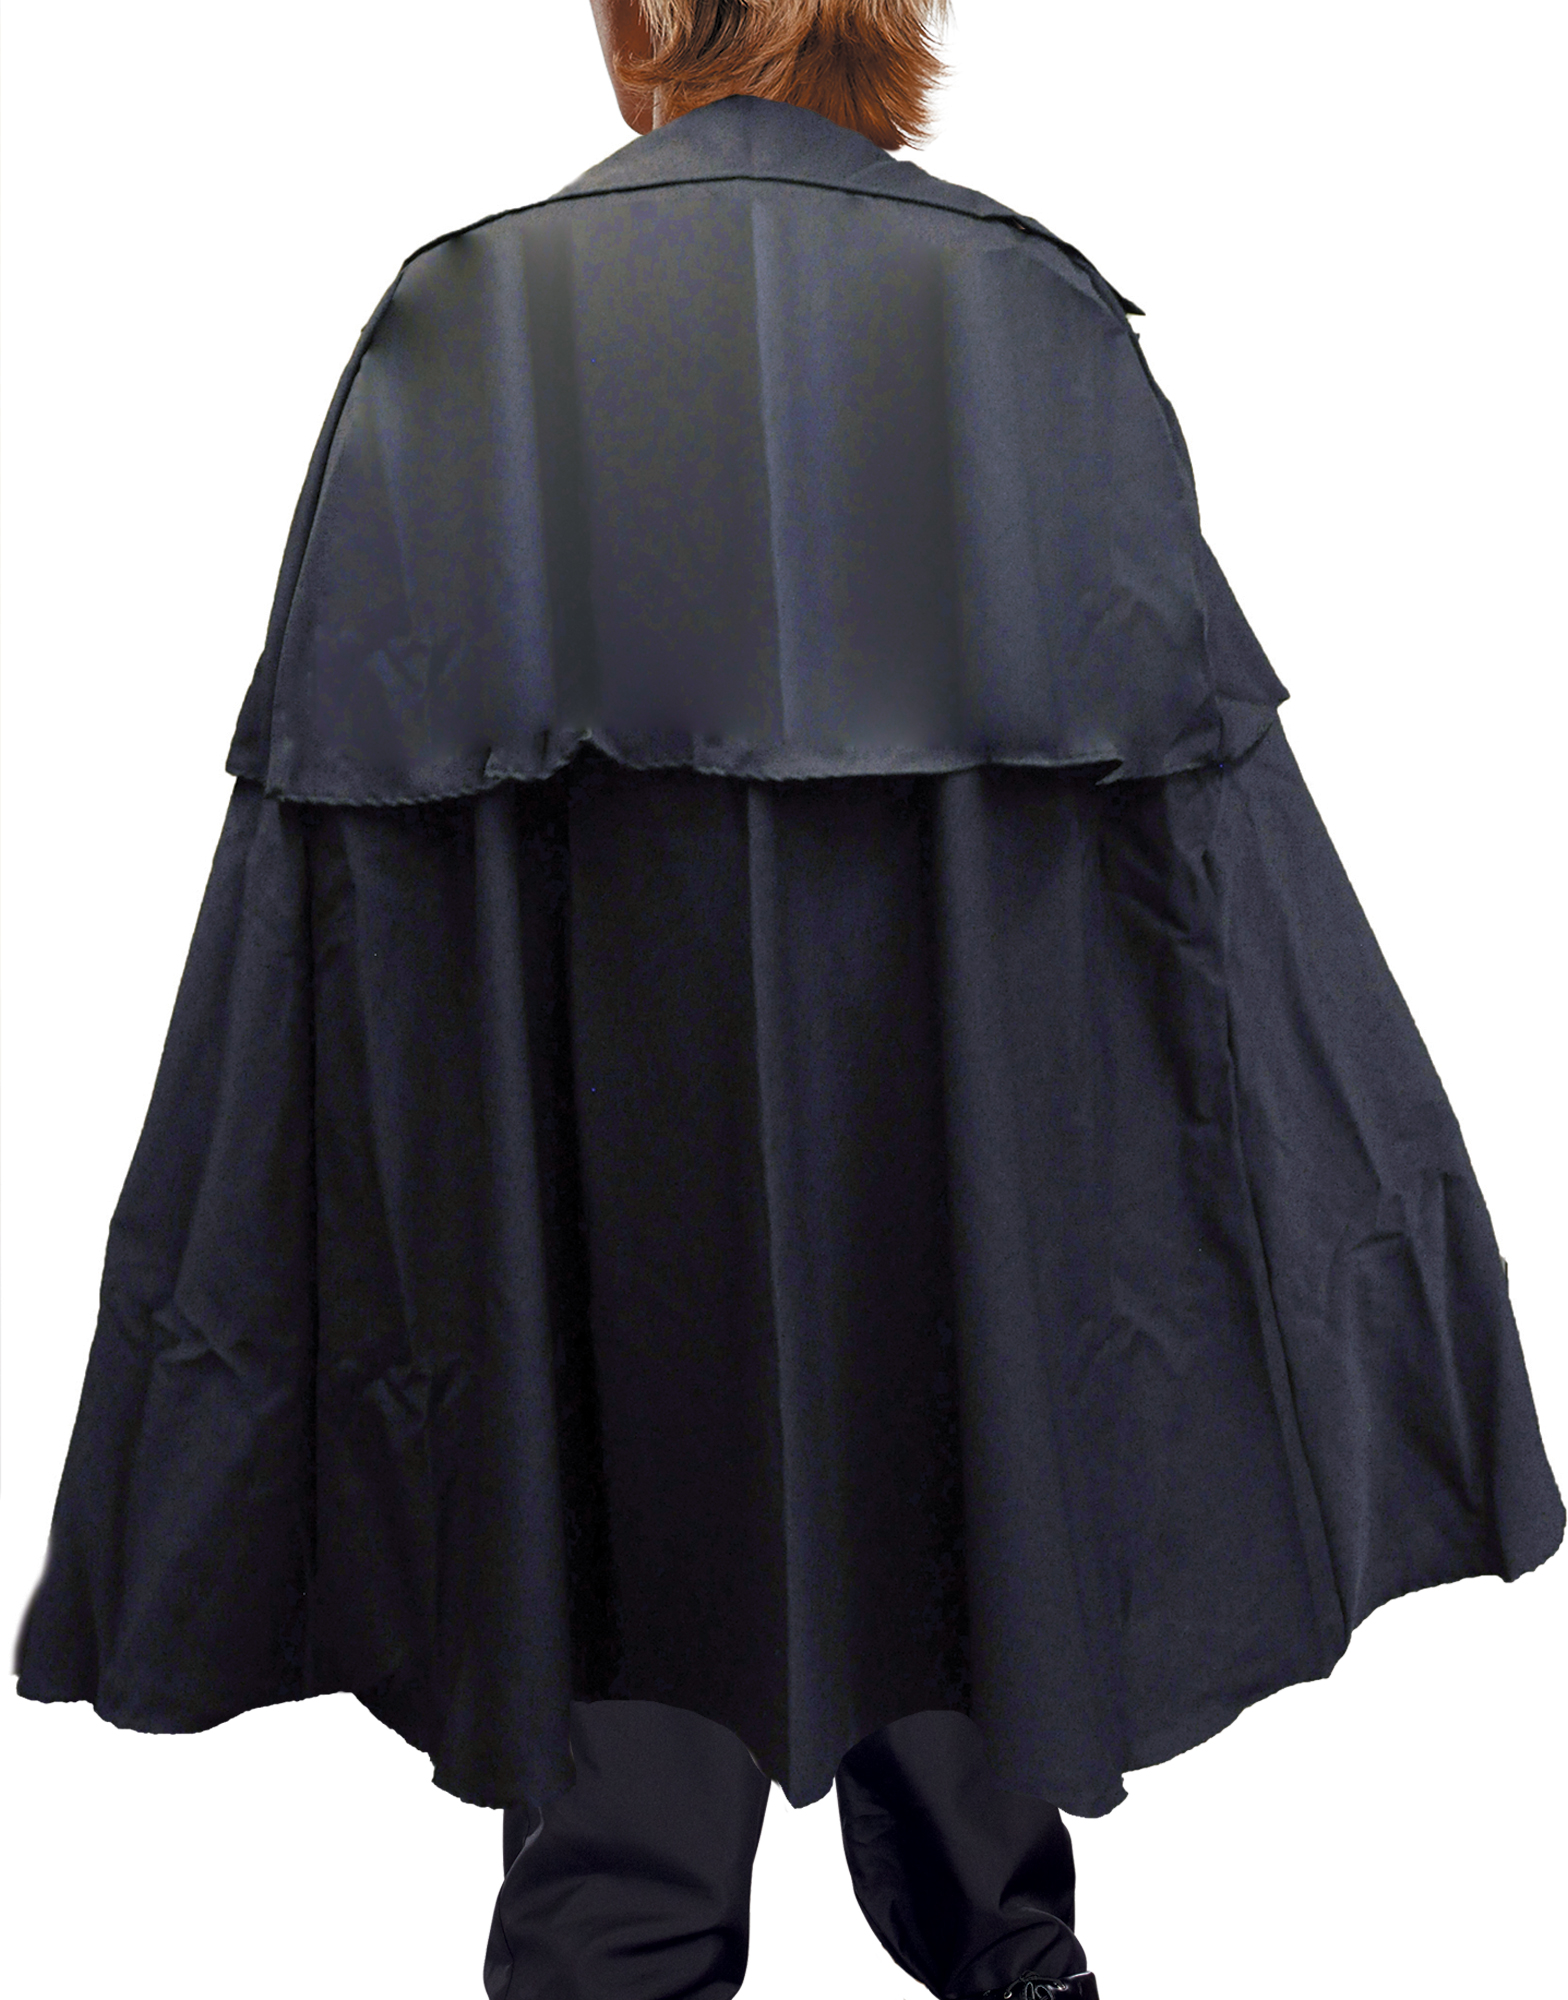 Featured Image for Dickens Cape